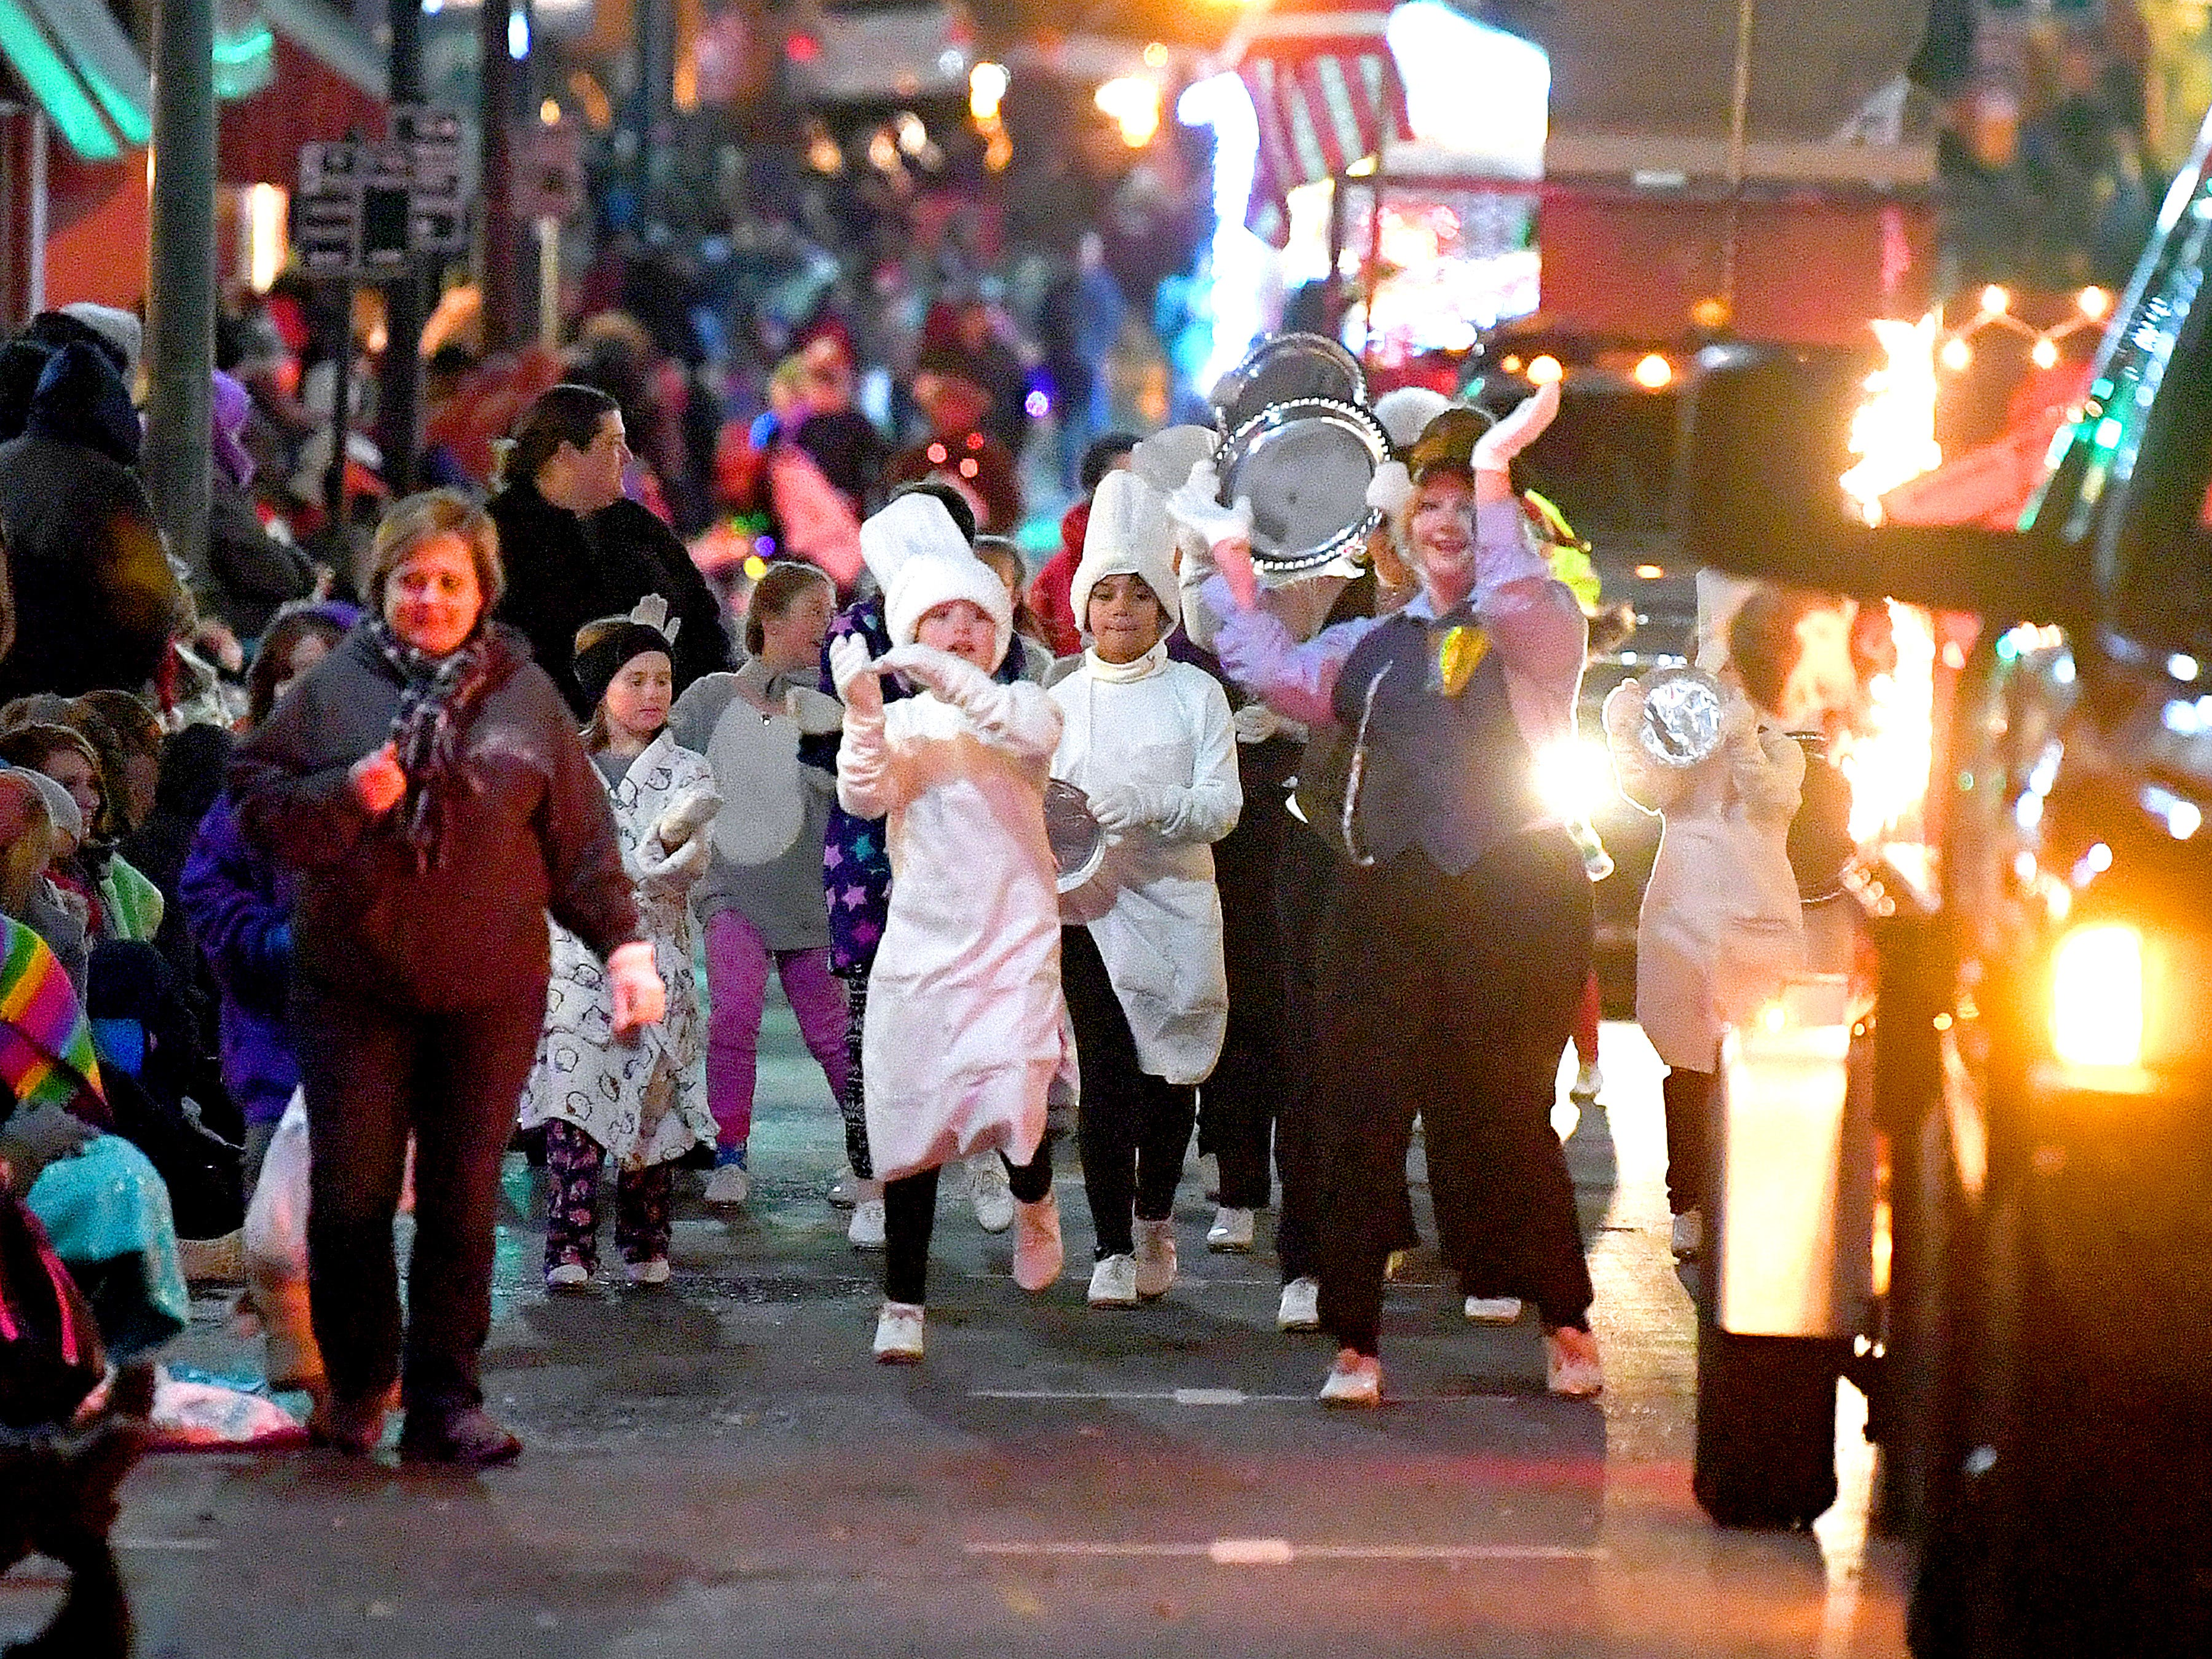 Dancers perform while walking the route during the Staunton Christmas Parade on Monday, Nov. 26, 2018.